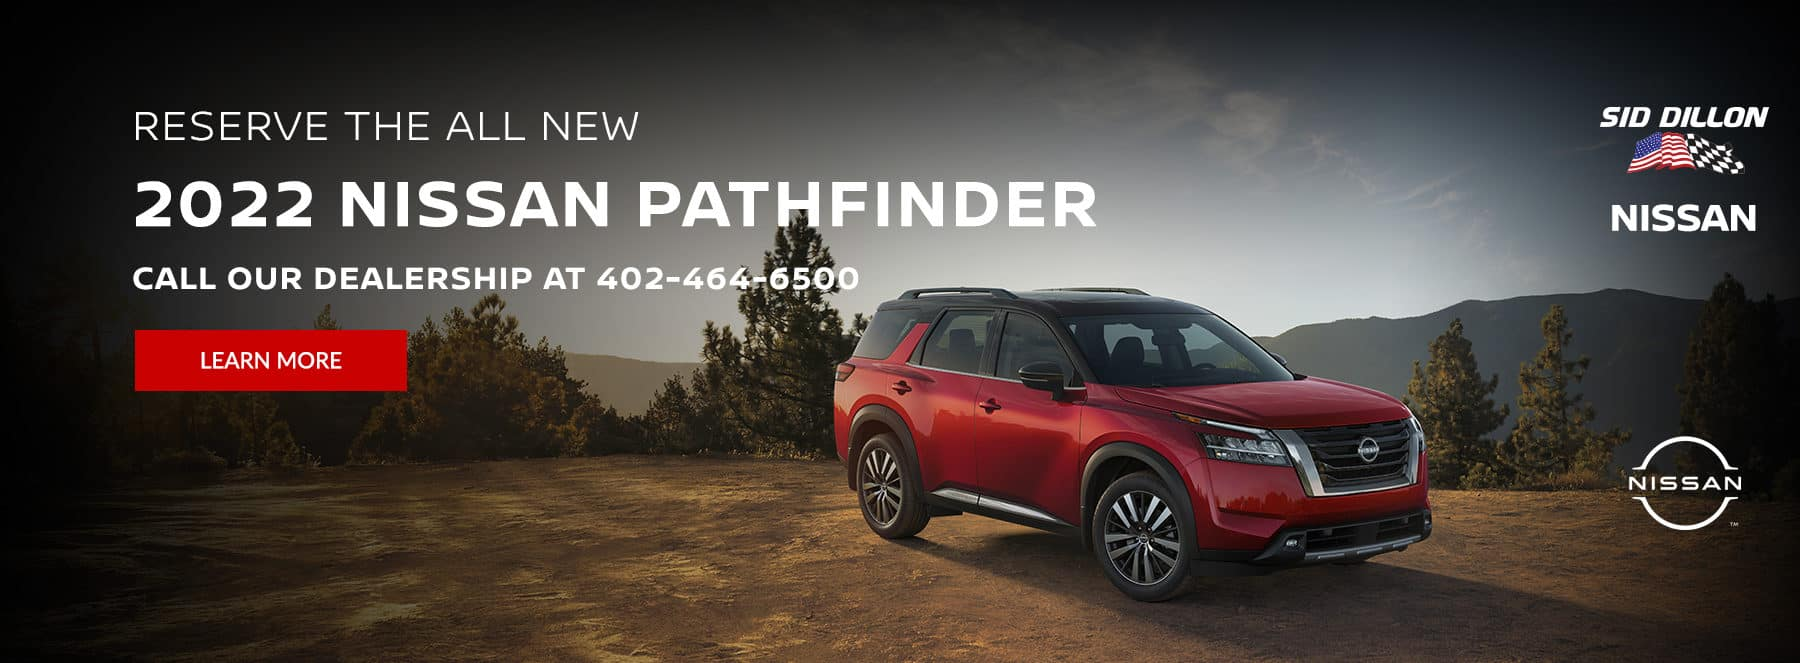 Reserve the All New 2022 Nissan Pathfinder